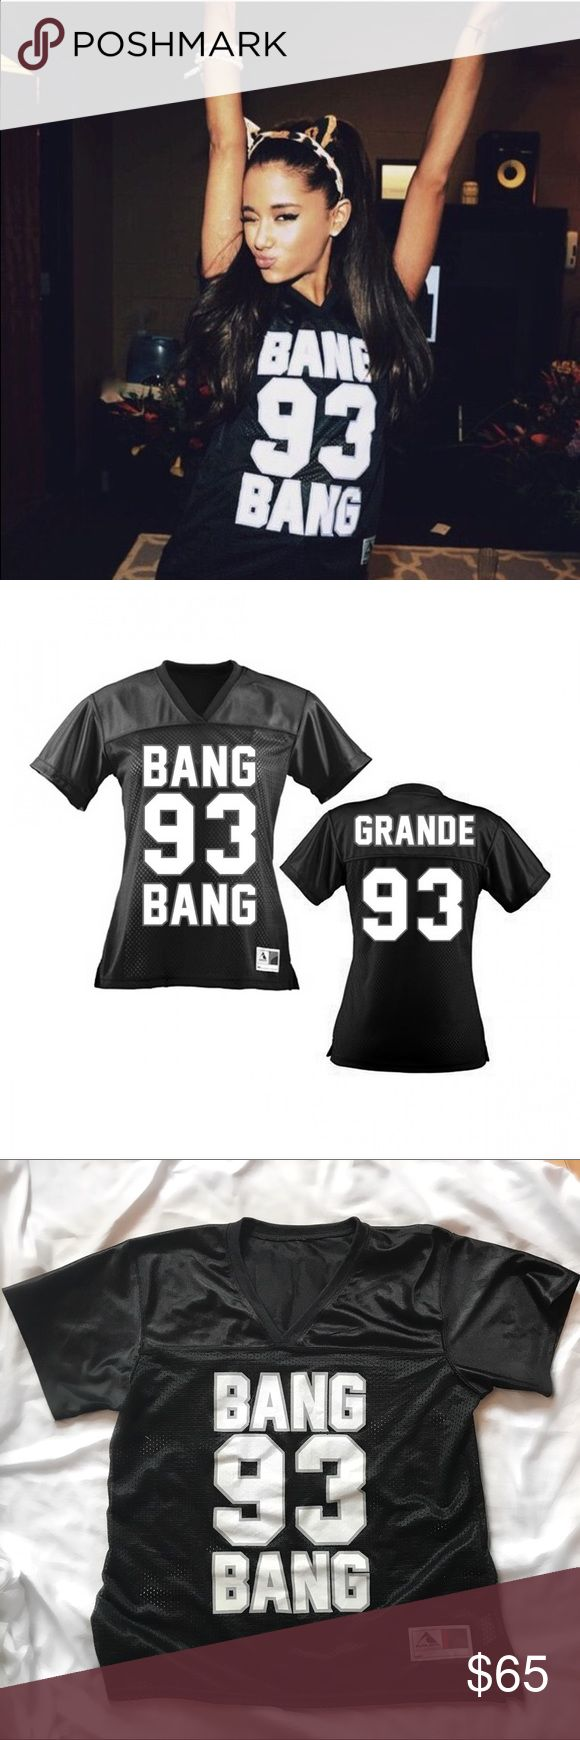 Ariana Grande Tour Merch - Bang Bang Jersey Bang Bang Ariana Grande Jersey purchased on the Honeymoon tour. 100% authentic - shirt is real jersey material - style as Ariana is wearing in the first photo. Super cute! Tour exclusive. Never worn. Excellent condition. Top rated seller - fast shipping certified! Ariana Grande Tops Tees - Short Sleeve